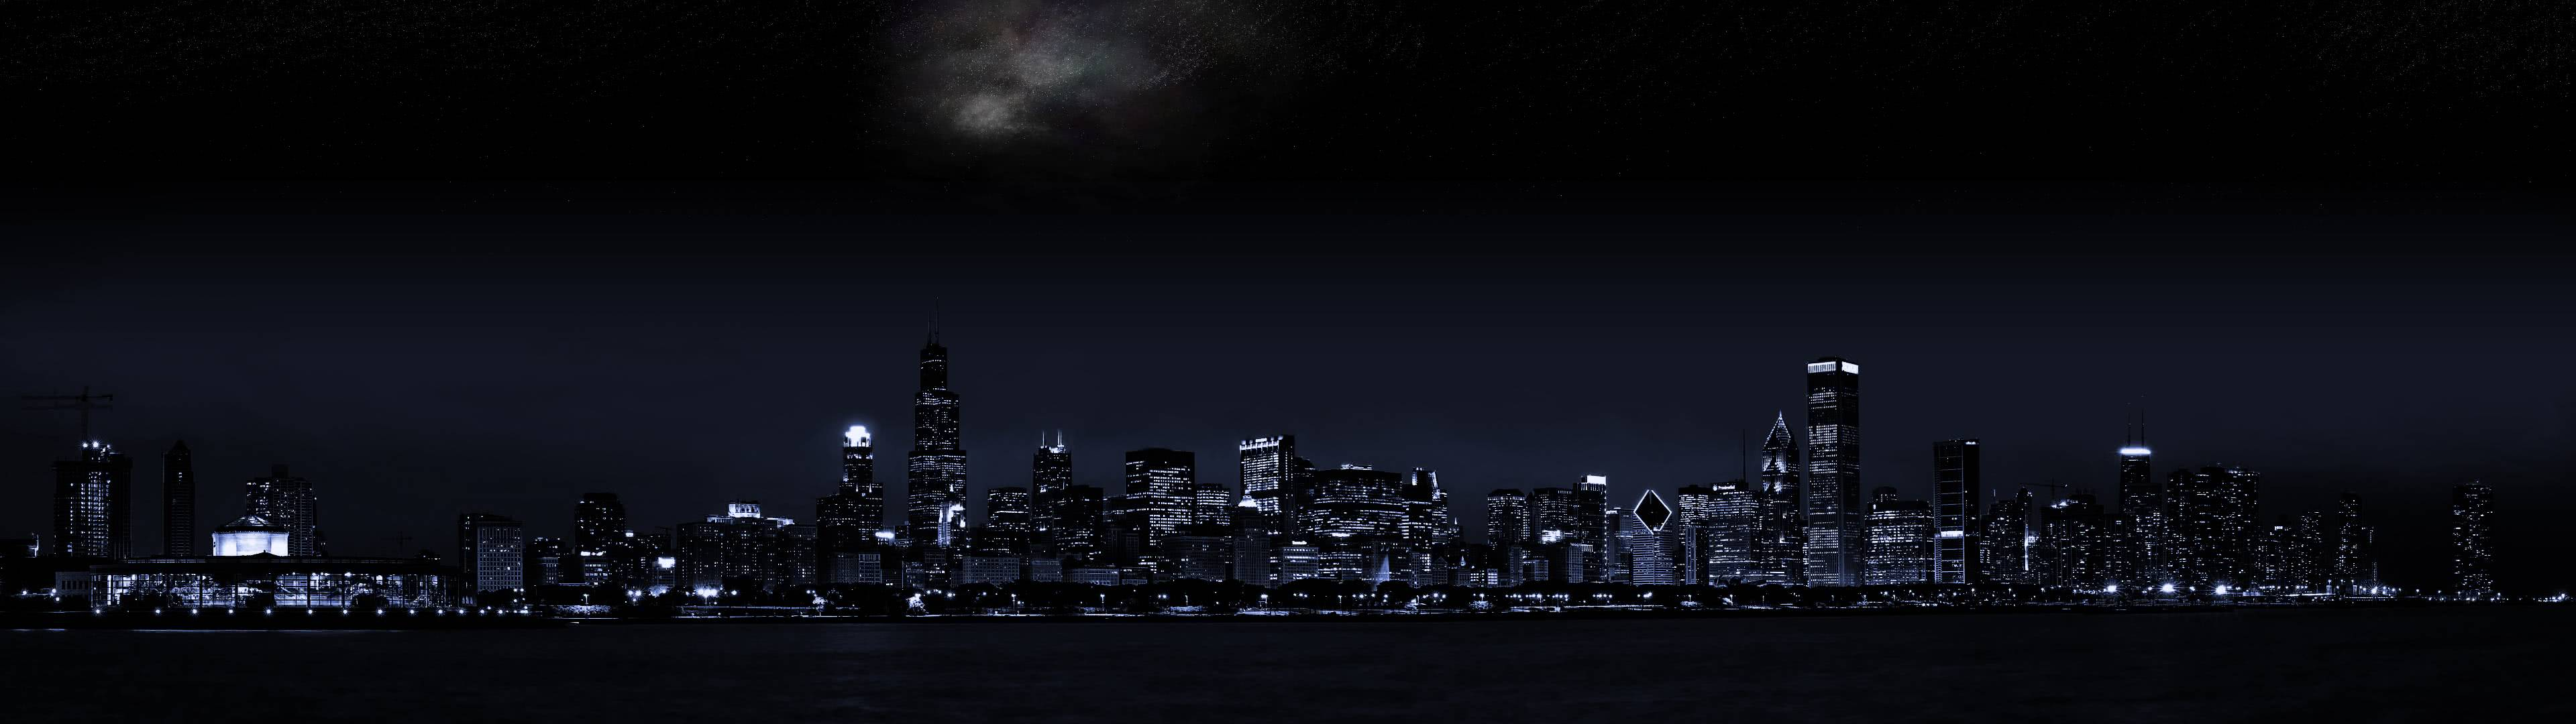 Chicago Skyline Night Dual Monitor Wallpaper Pixelz